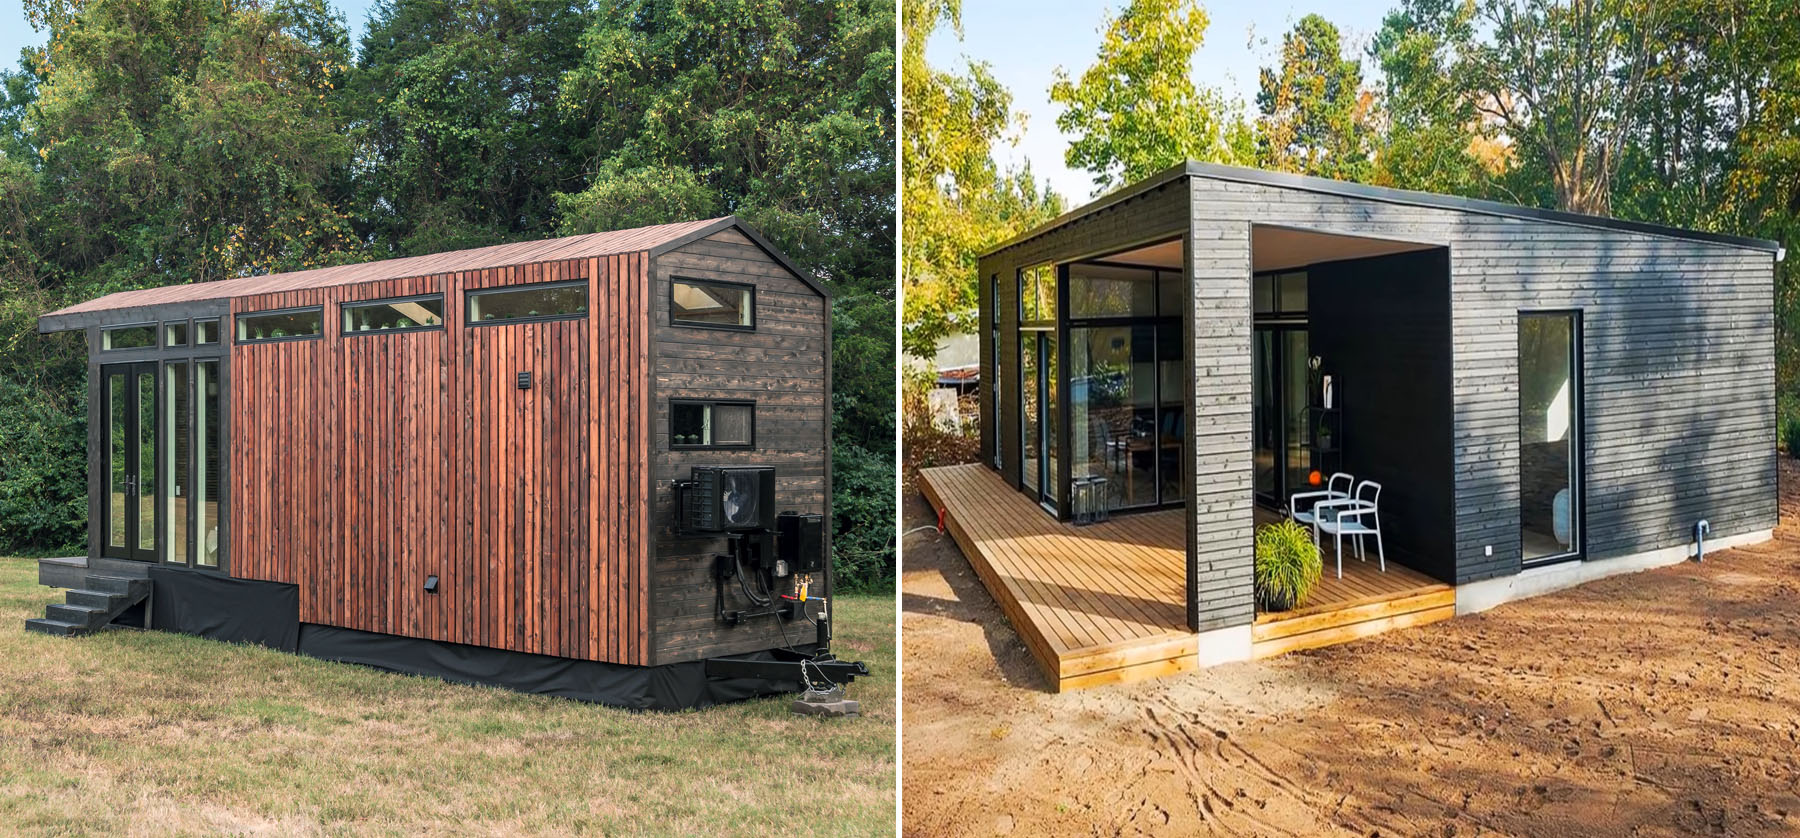 do tiny houses appreciate in value side by side comparison of tiny homes